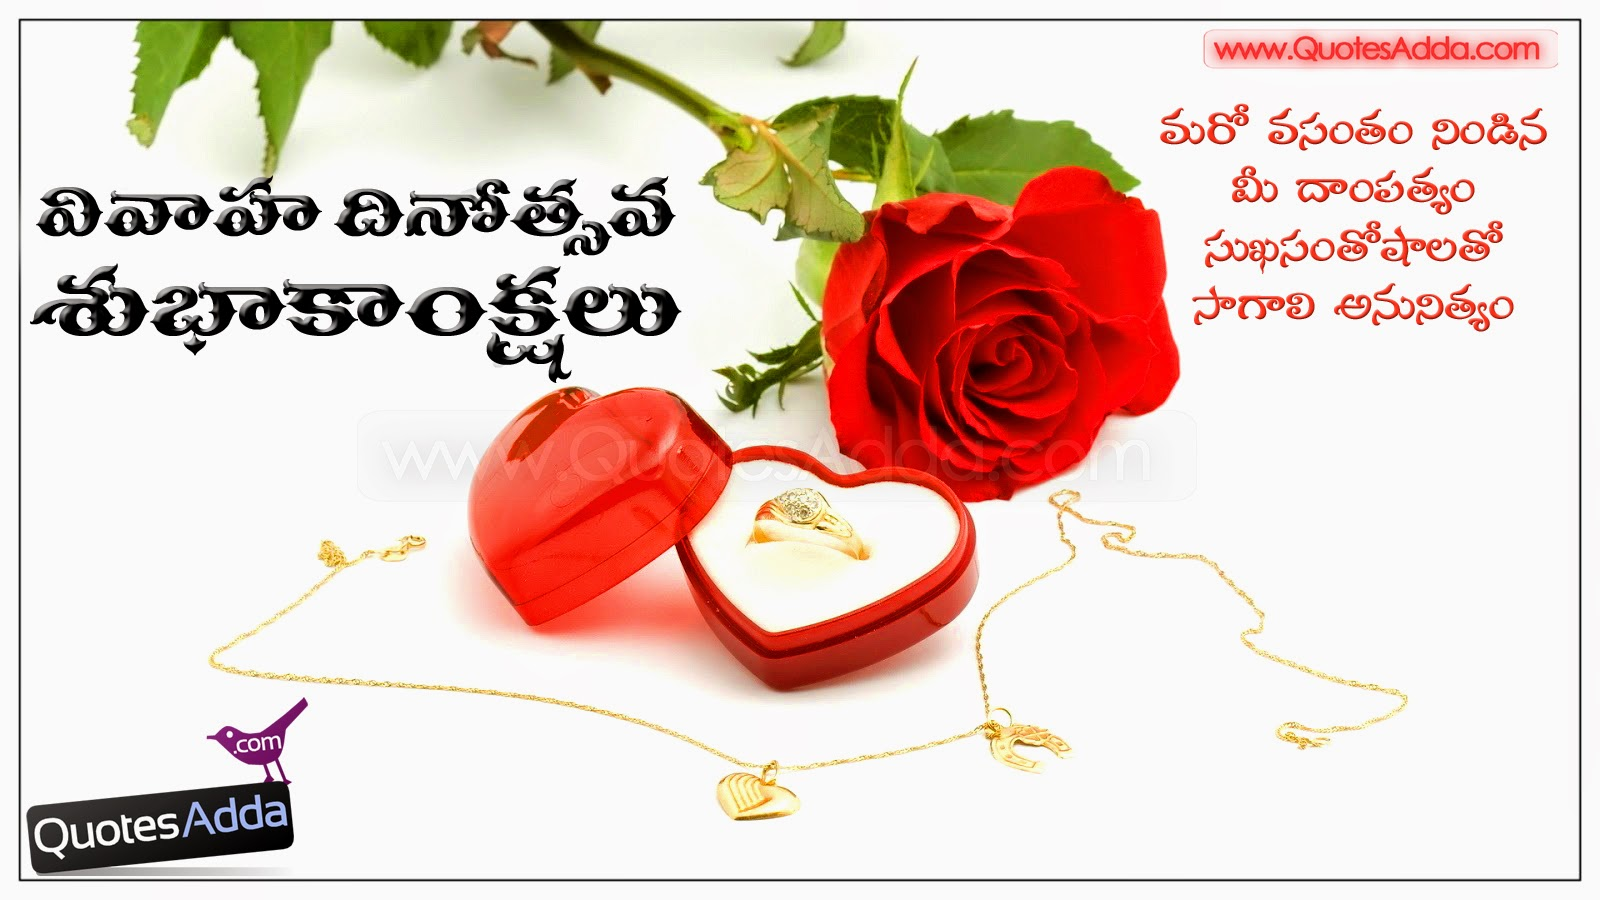 Tamil Wedding Wishes Quotes Wedding Wishes Quotes in Tamil